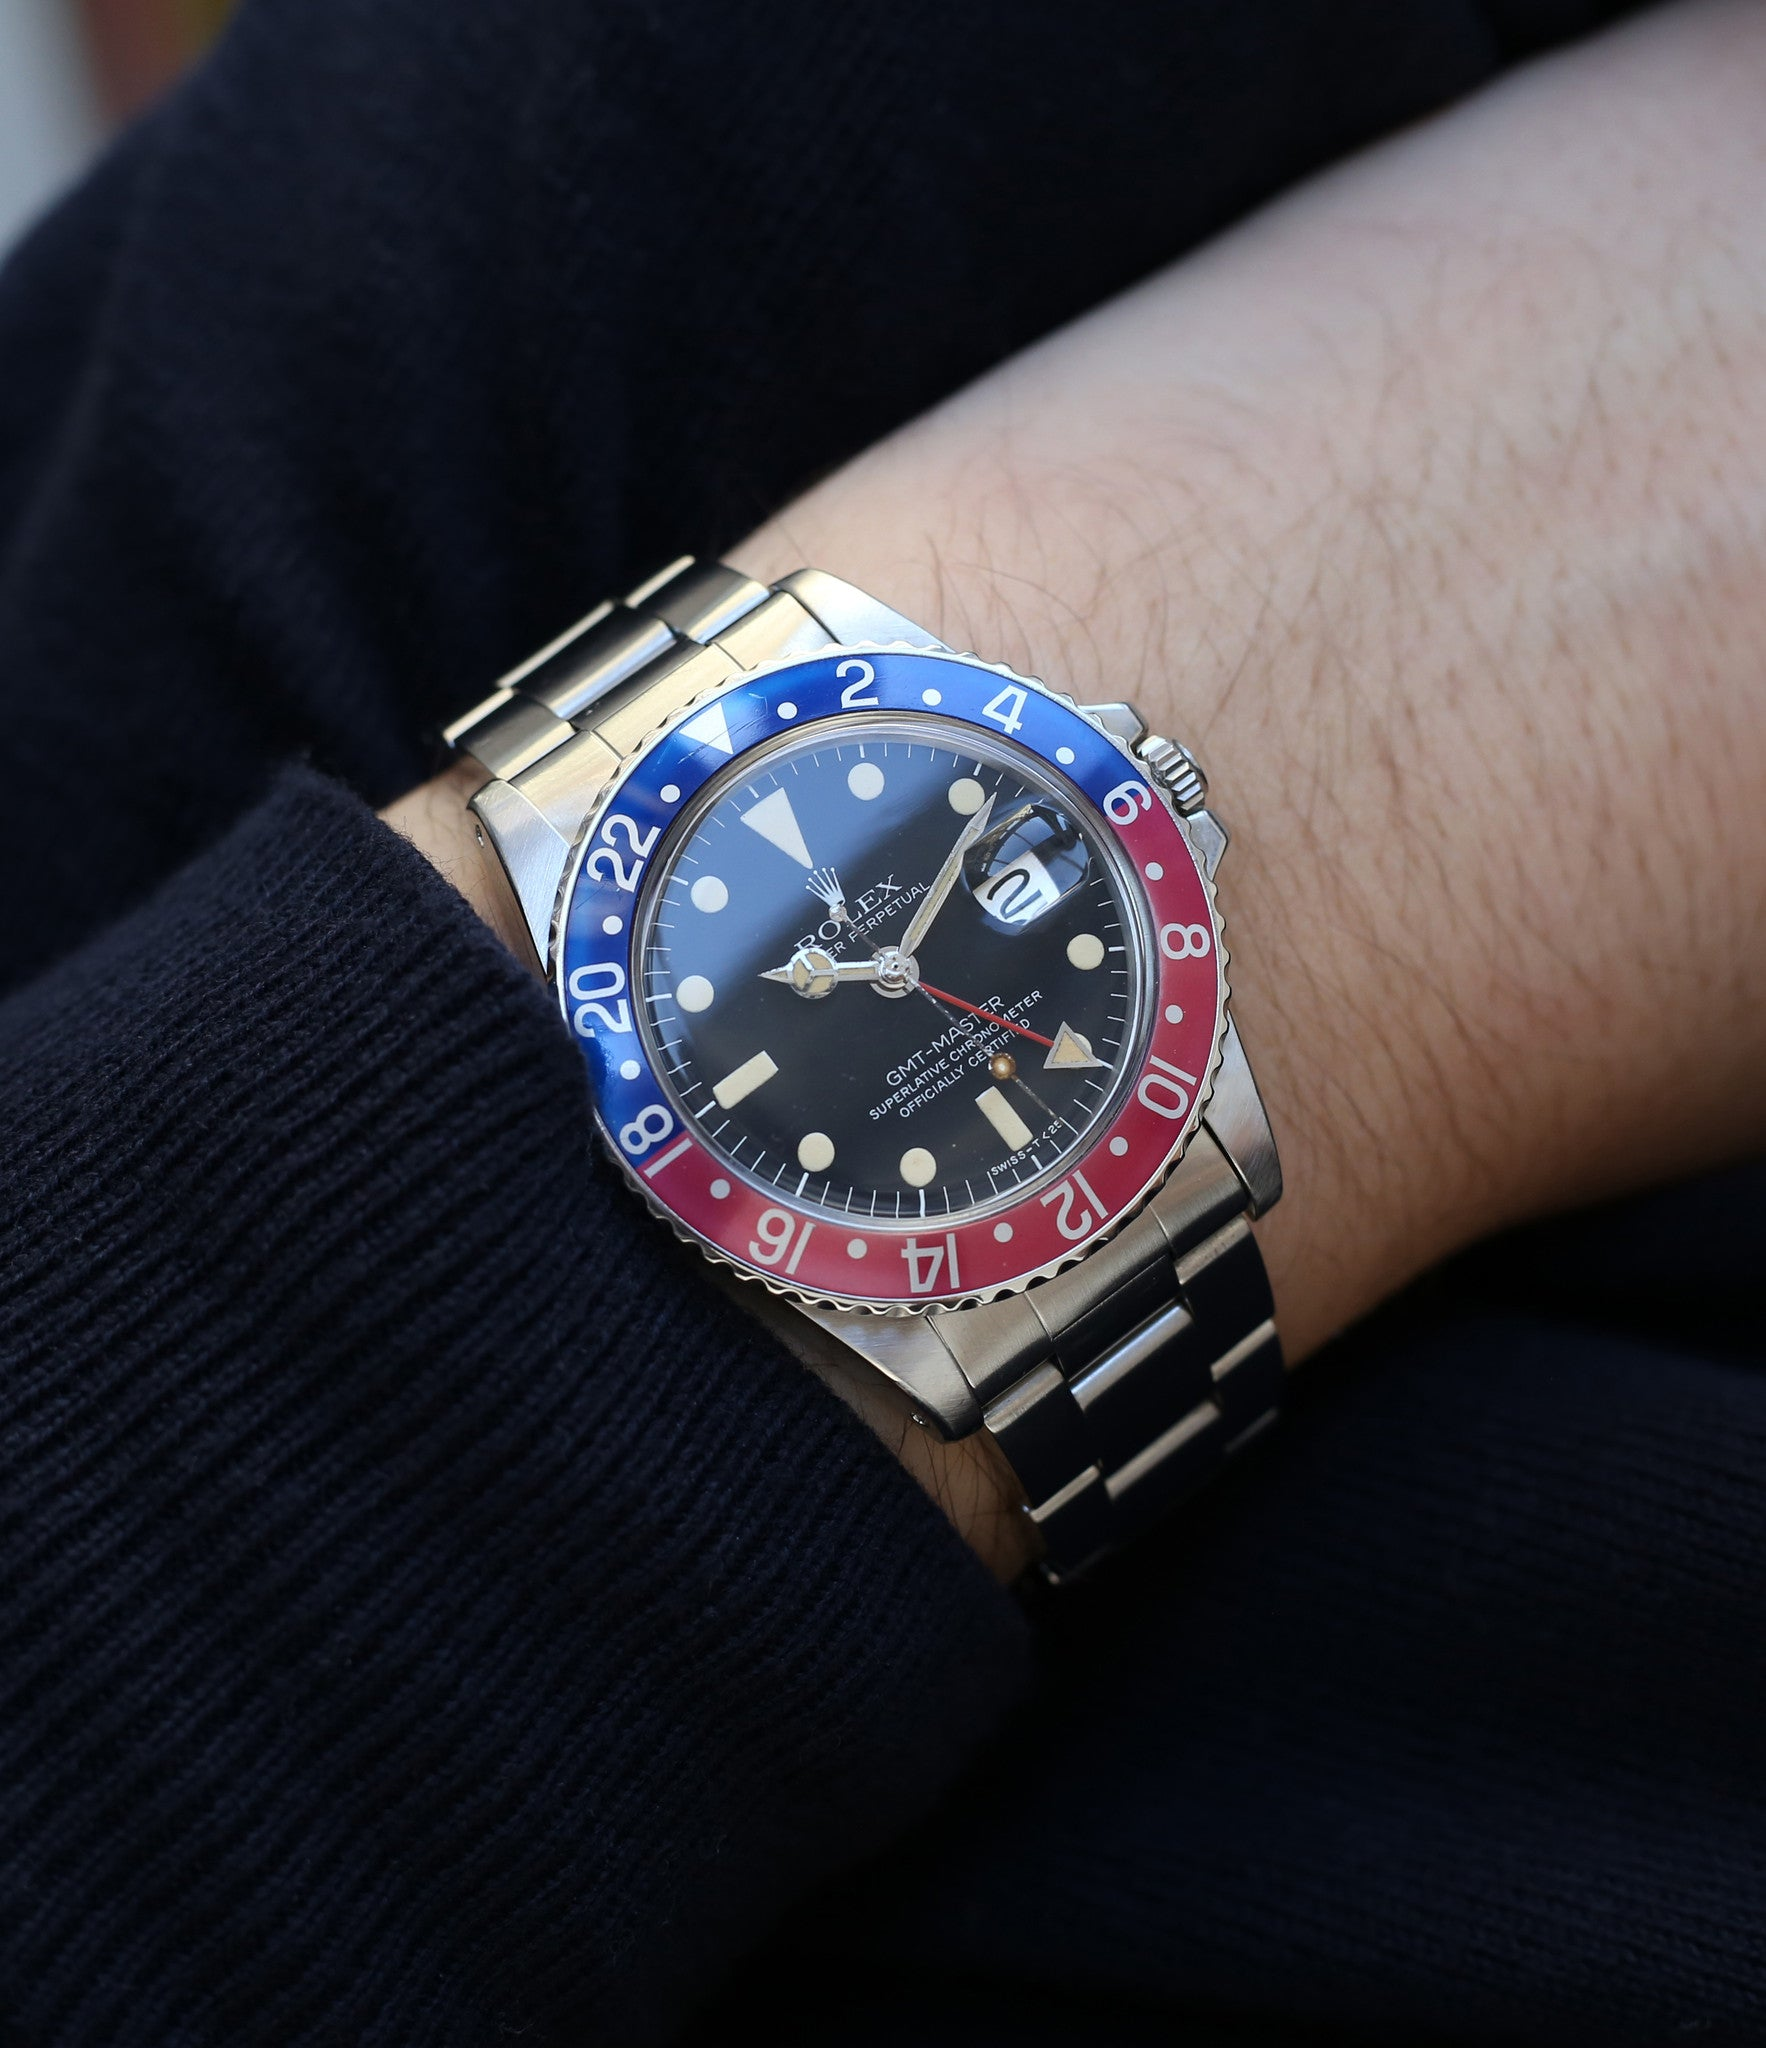 buy vintage Rolex GMT master 1675 steel wristwatch Pepsi bezel rare full set chronometer for sale from online WATCH XCHANGE London